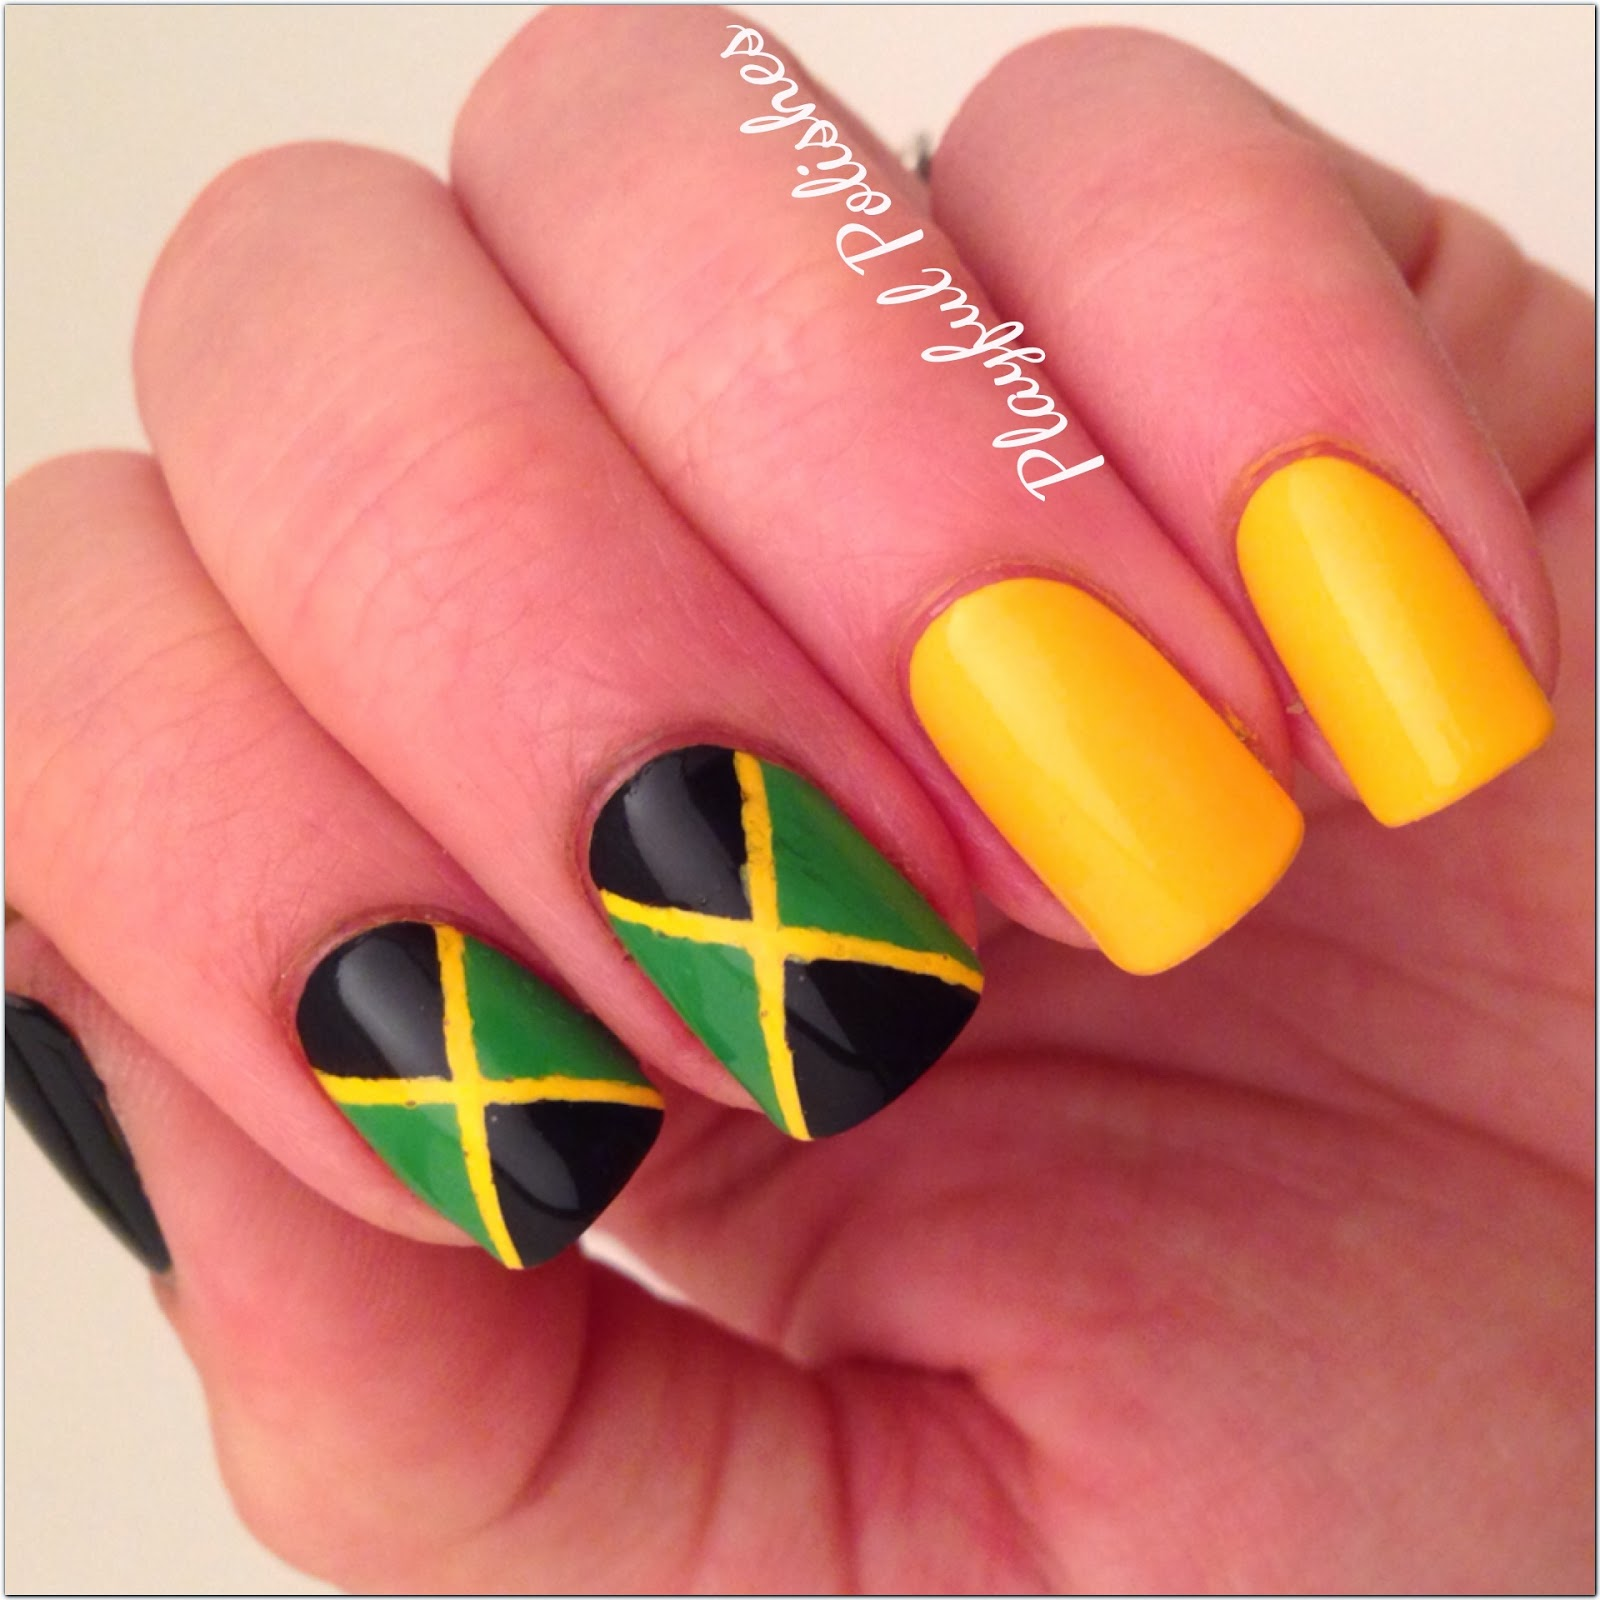 Playful Polishes 31 Day Nail Art Challenge Inspired By A Flag